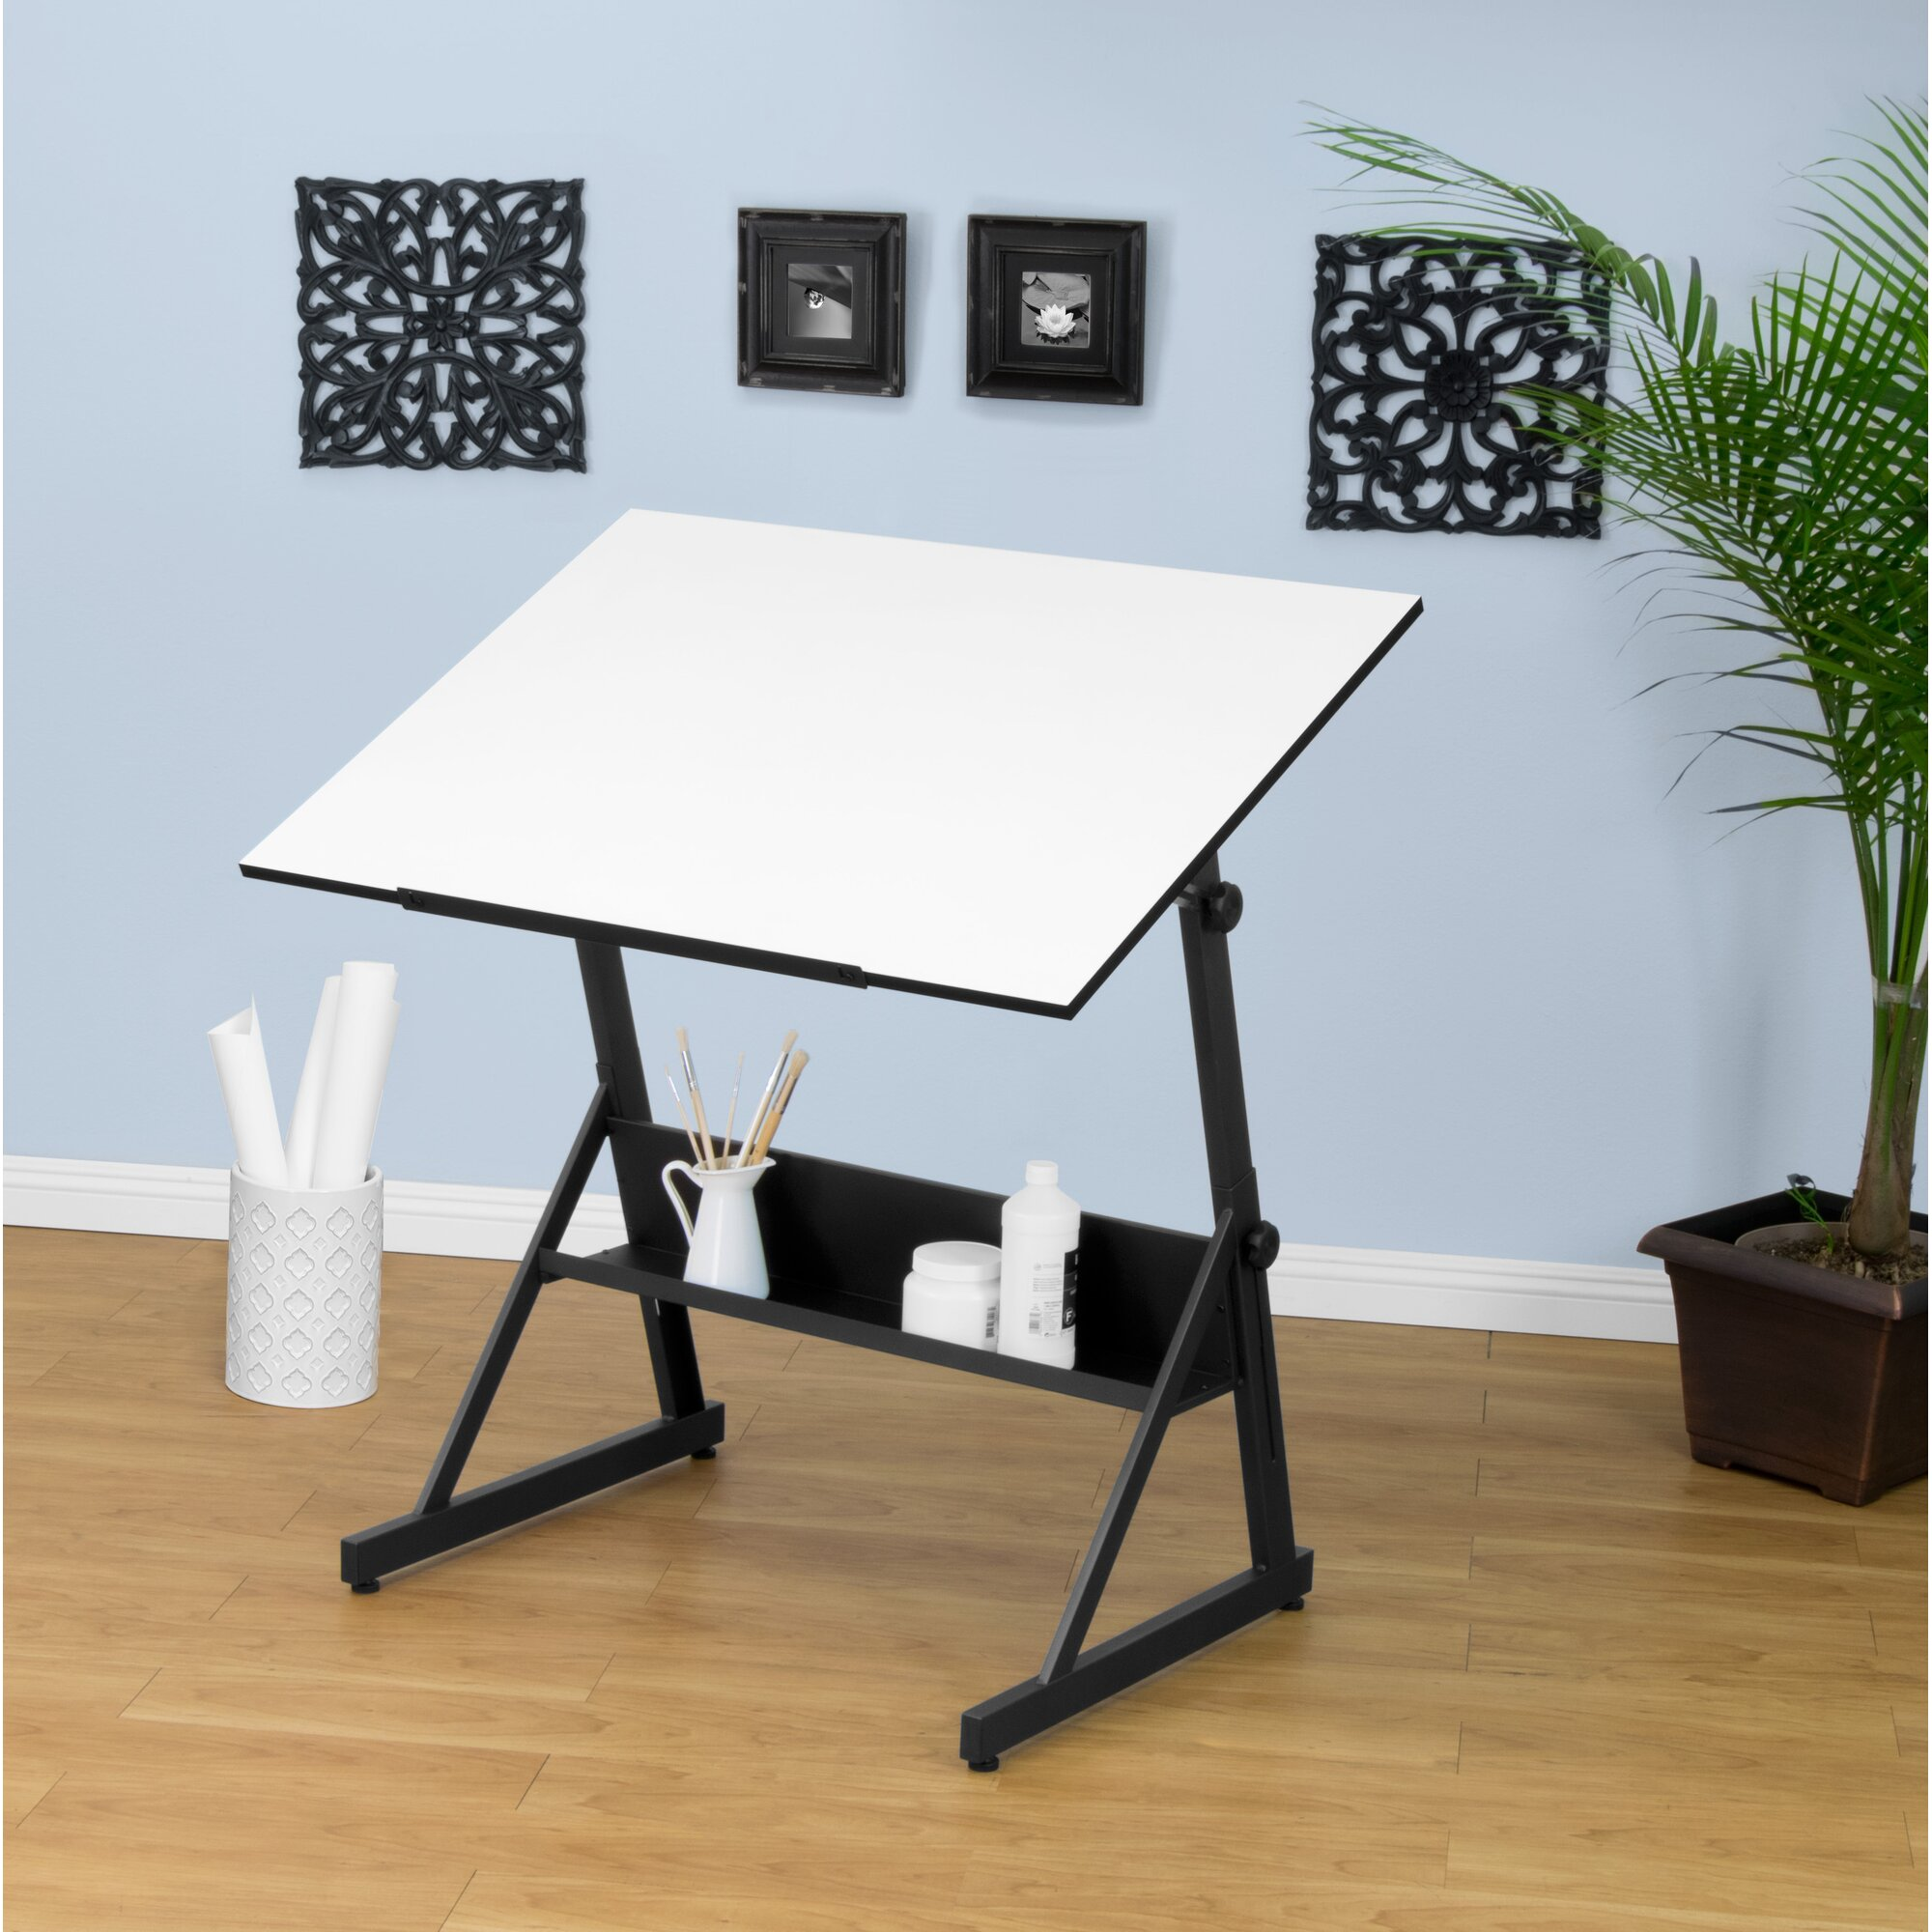 Studio Design Drafting Table studio designs vision craft station with glass top plus rolling wheels drafting drawing tables at hayneedle Solano Adjustable Drafting Table